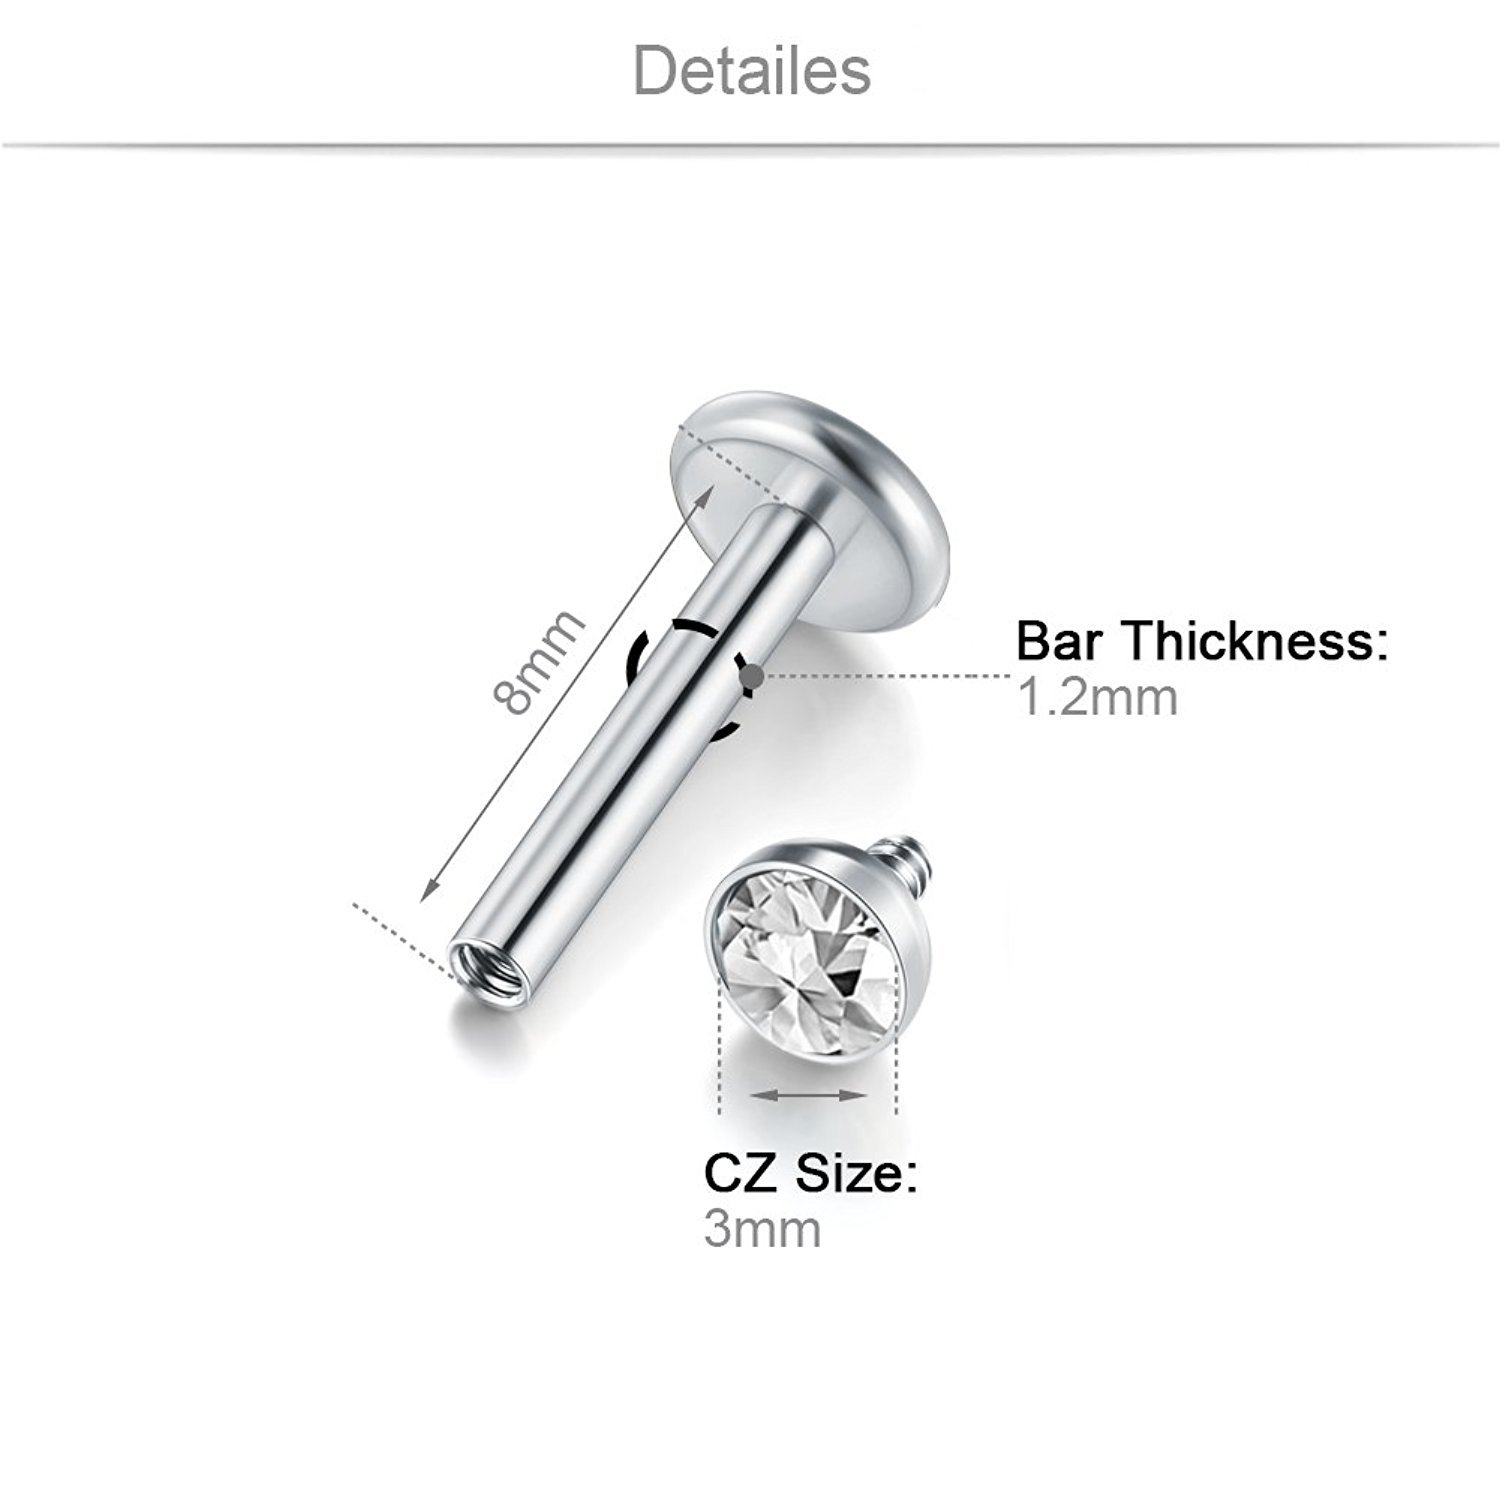 Briana Williams Cartilage Tragus Earrings-16G 2.5mm 3mm CZ Stainless Steel Internally Threaded Labret Monroe Medusa Lip Ring Rook Helix Earring Stud Barbell Piercing Jewelry 8mm Lip-S-6pcs-8mm